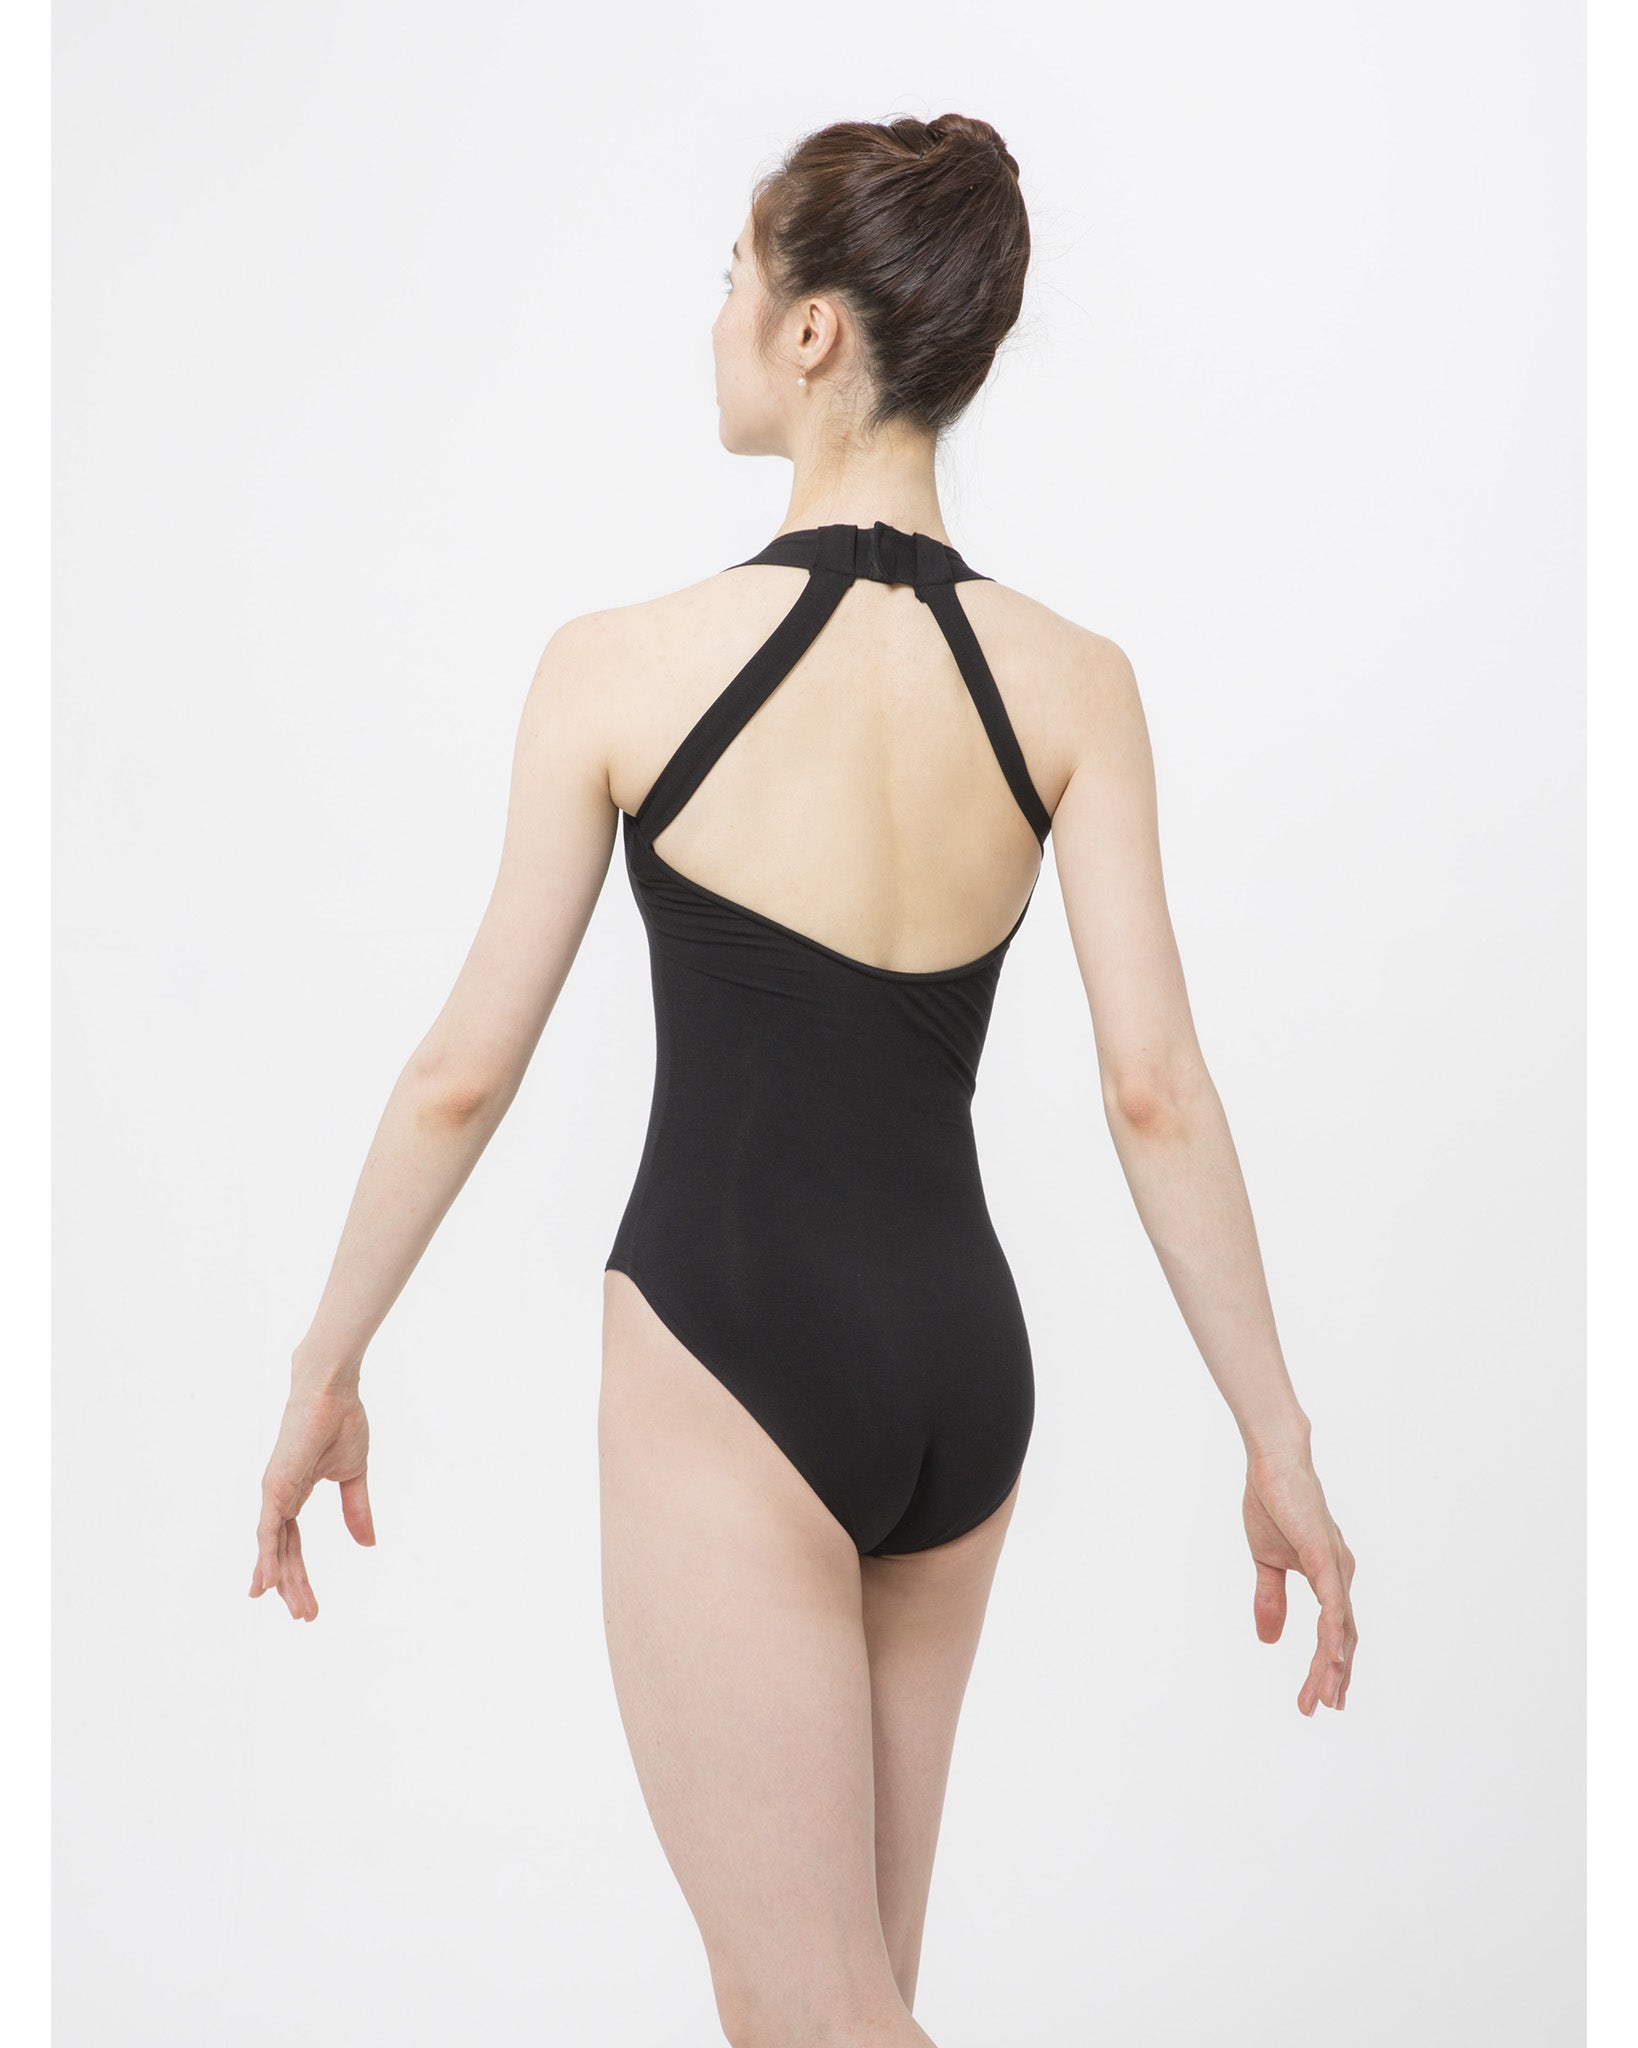 Sonata Classic Halter Neck Leotard - SL4448 Womens - Dancewear - Bodysuits & Leotards - Dancewear Centre Canada